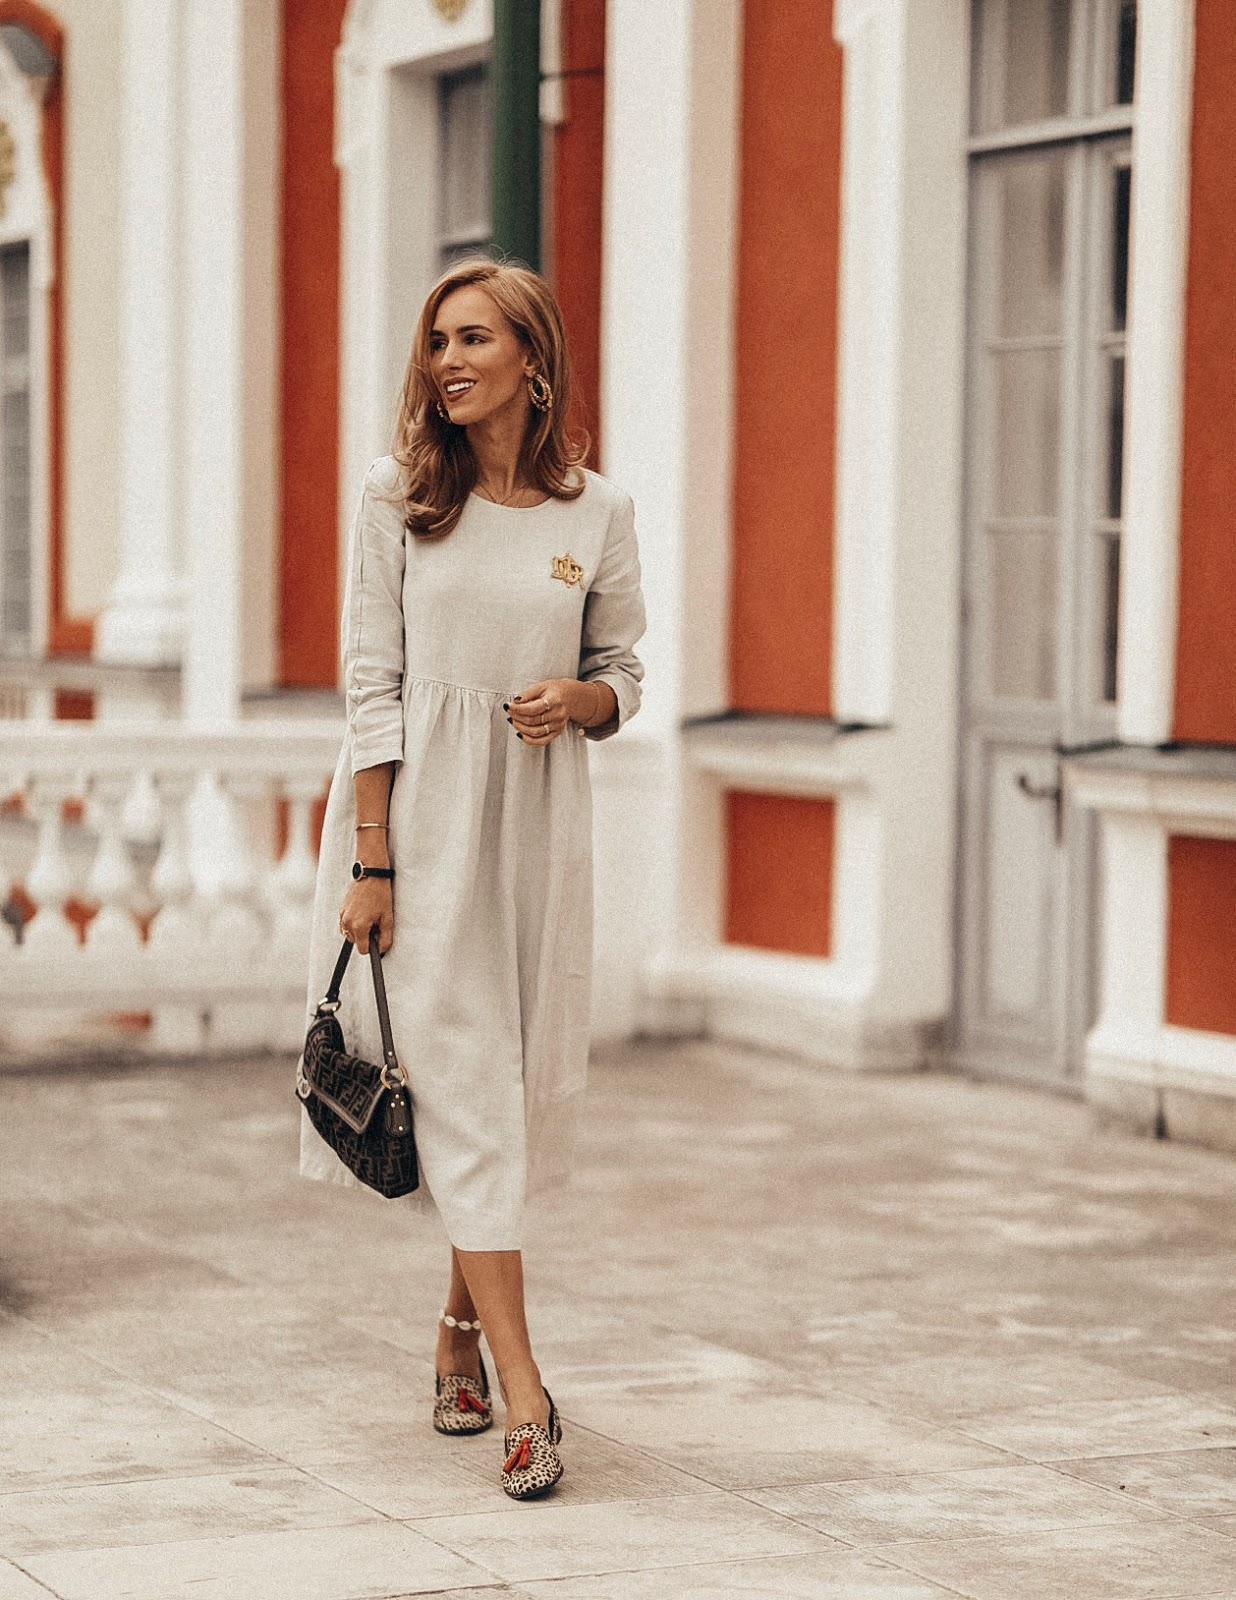 linen midi dress summer street style outfit